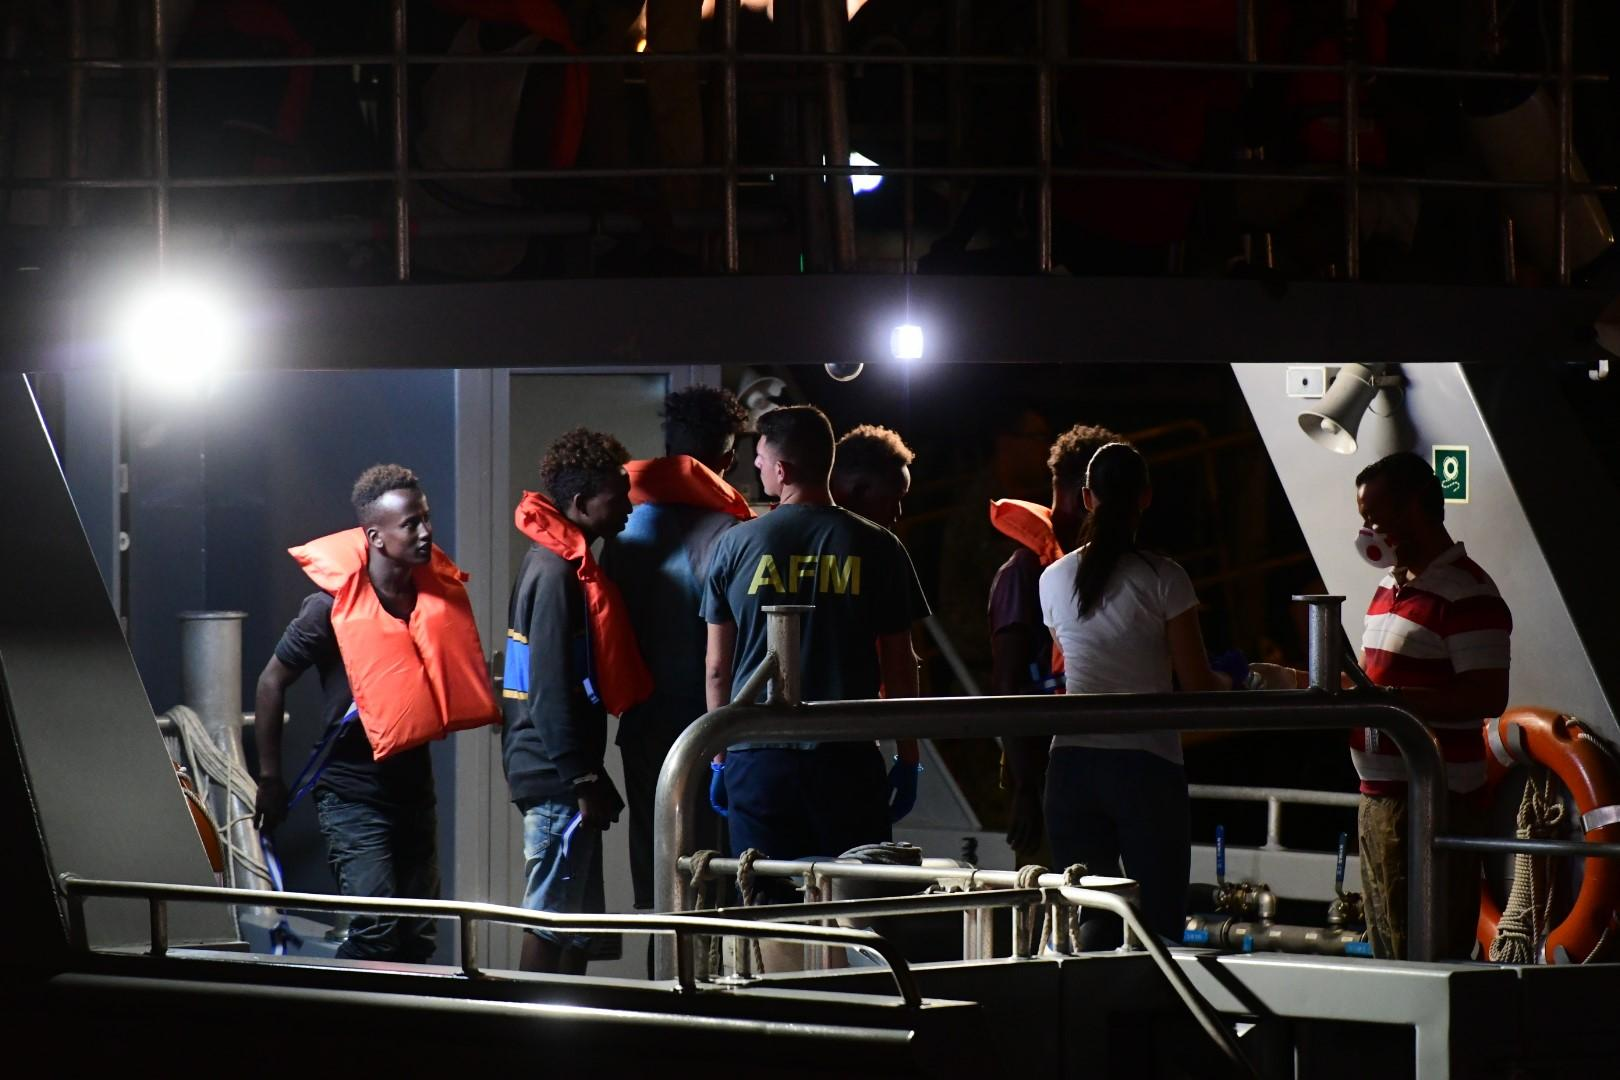 Some of the migrants disembarking in Malta on Sunday night. Photo: Jonathan Borg